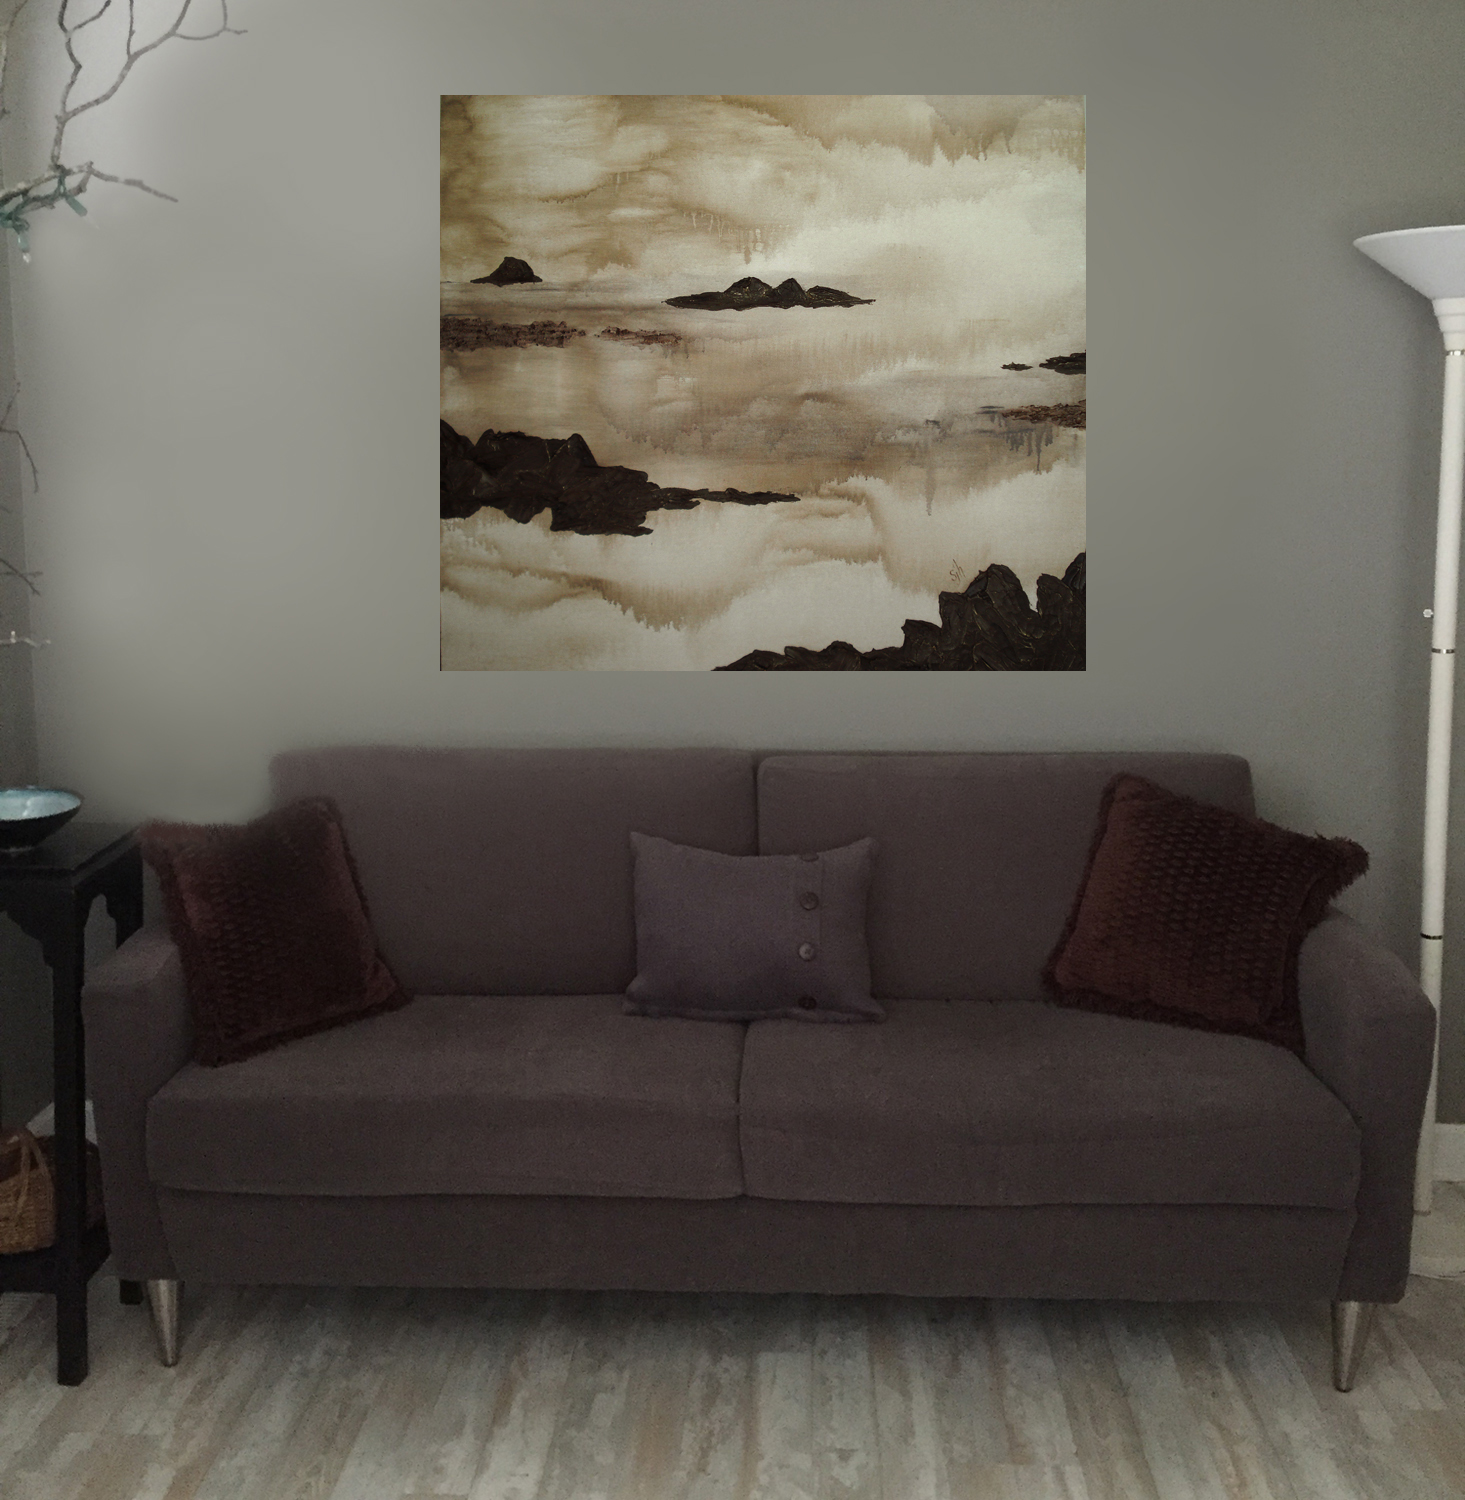 Quietude   - 48 x 48 x 1.5 - Shown hanging in a living room setting.